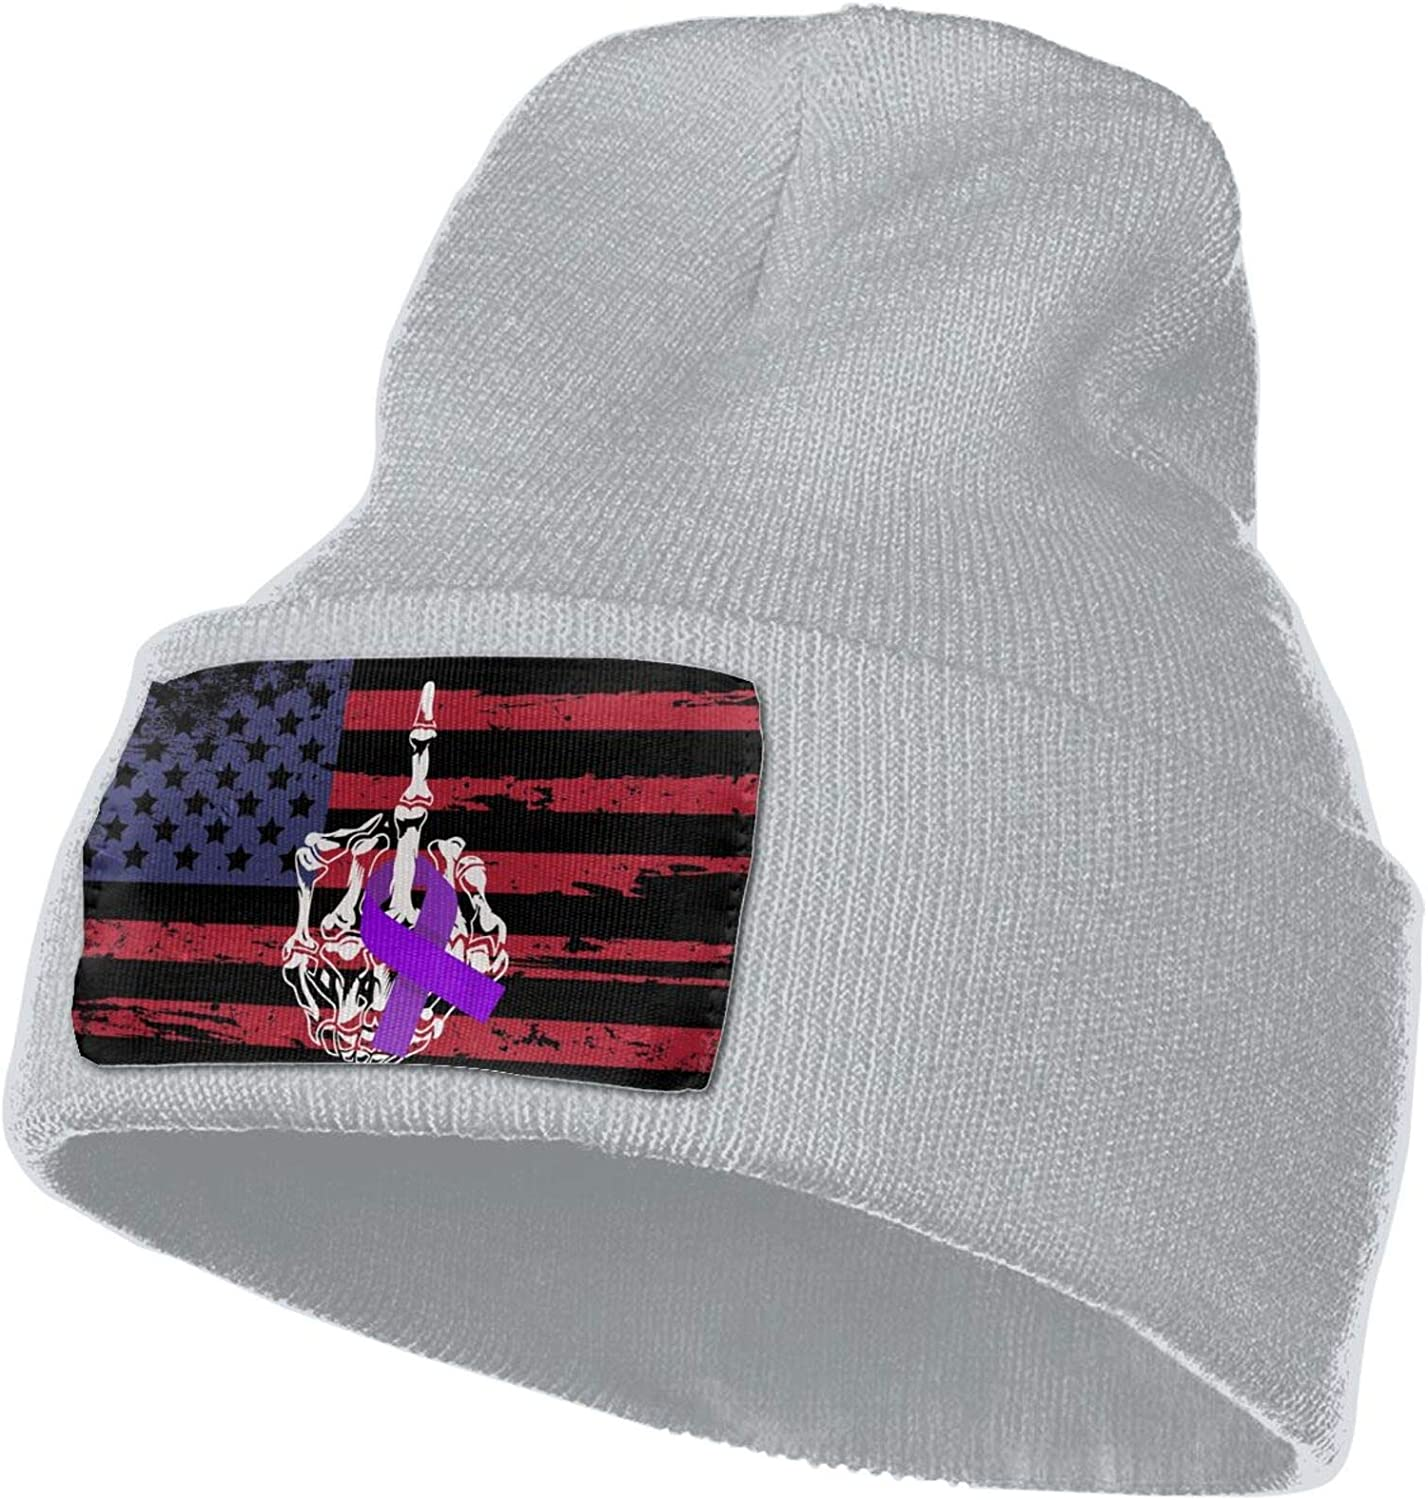 jiangshi Fuck Pancreatic Cancer Middle Finger Unisex Beanie Knit Hat Soft Warm Winter Skull Cap